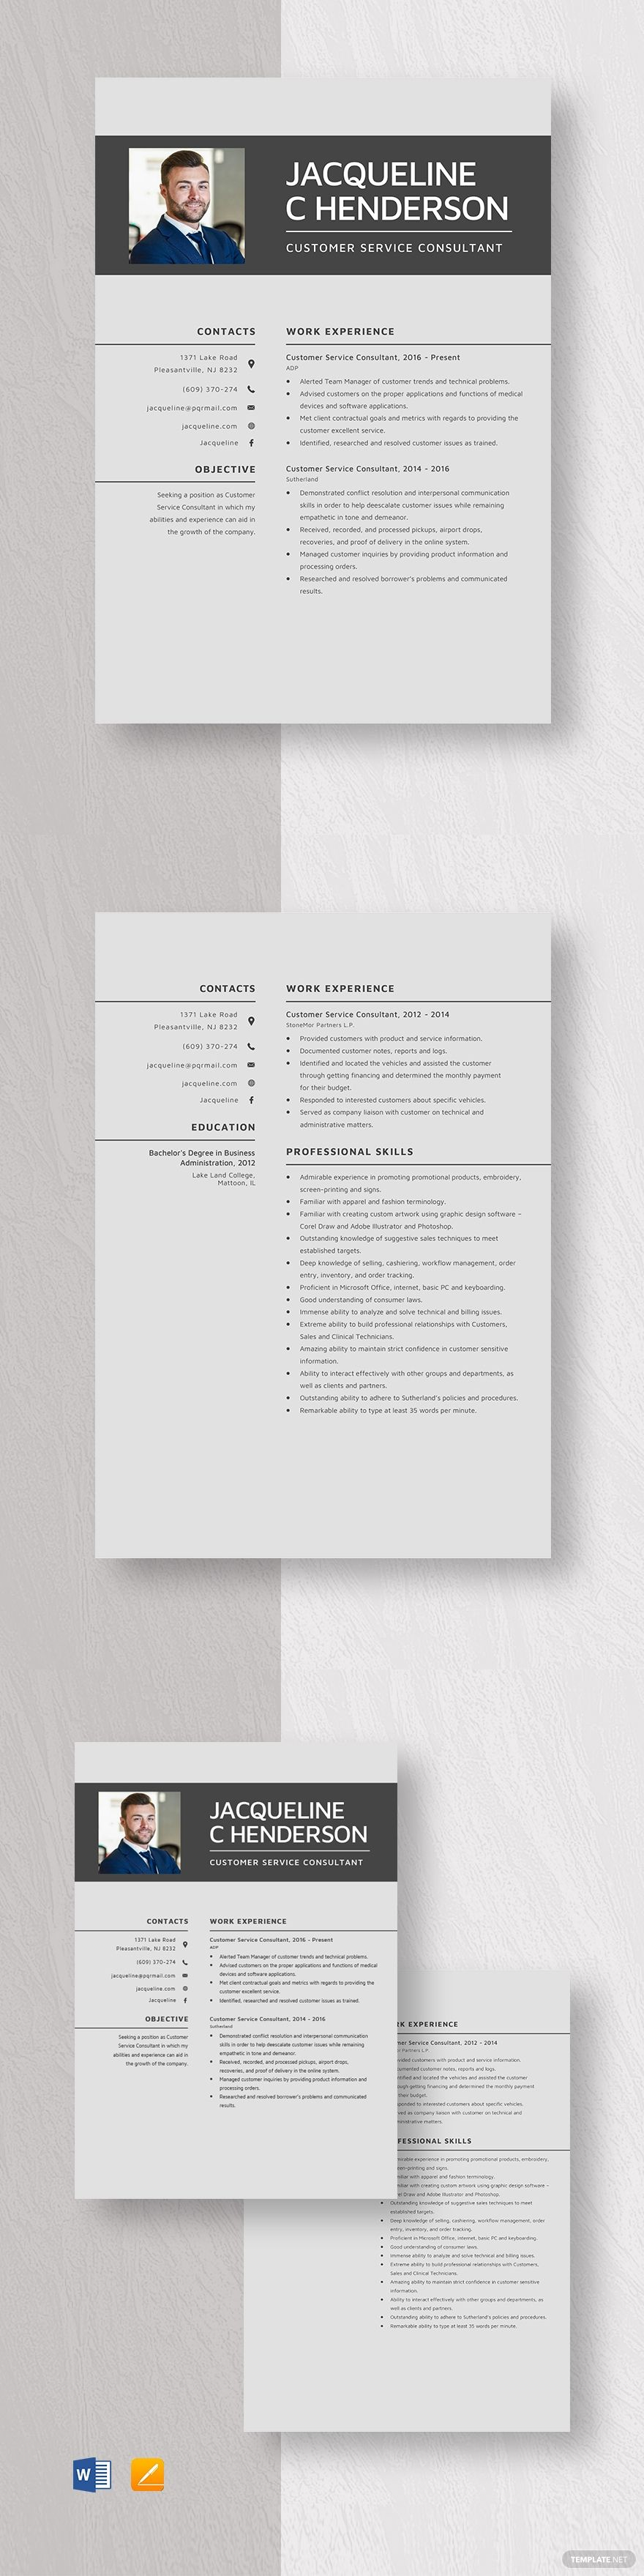 Customer service consultant resume template ad paid